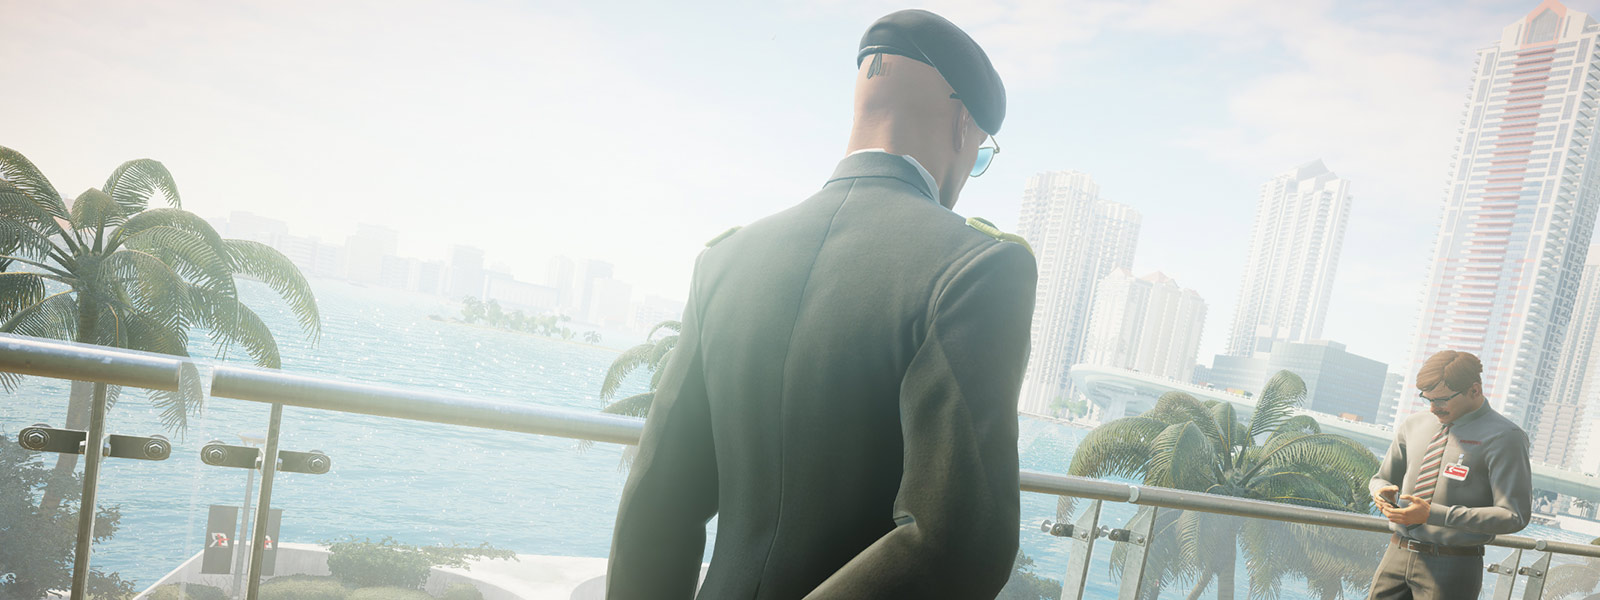 Back view of Agent 47 standing near a racetrack worker in a suit and tie